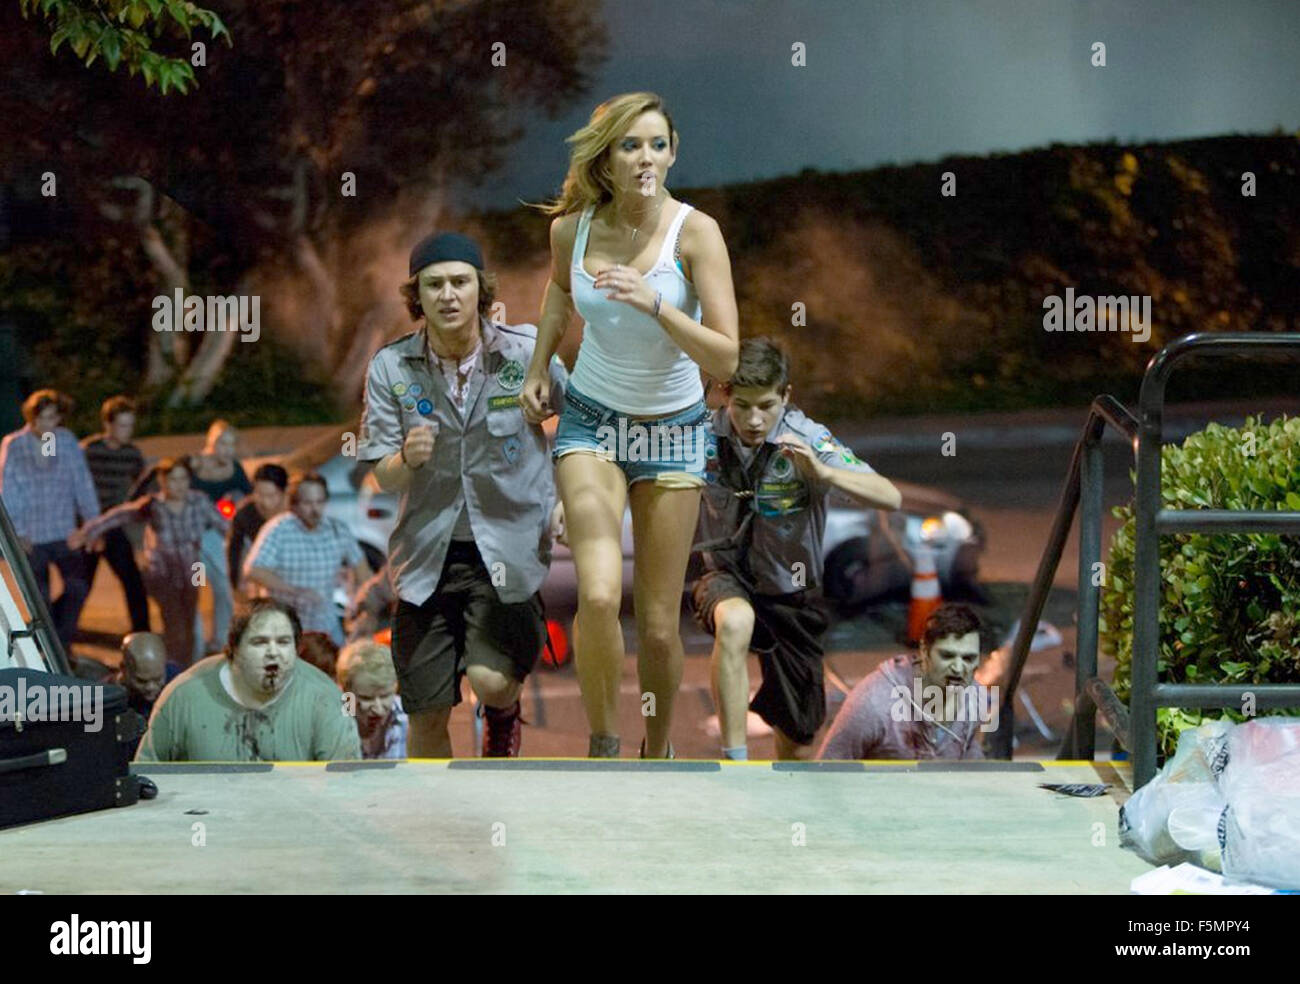 SCOUTS GUIDE TO THE ZOMBIE APOCALYPSE 2015 Broken Road Productions film with Sarah Dumont - Stock Image